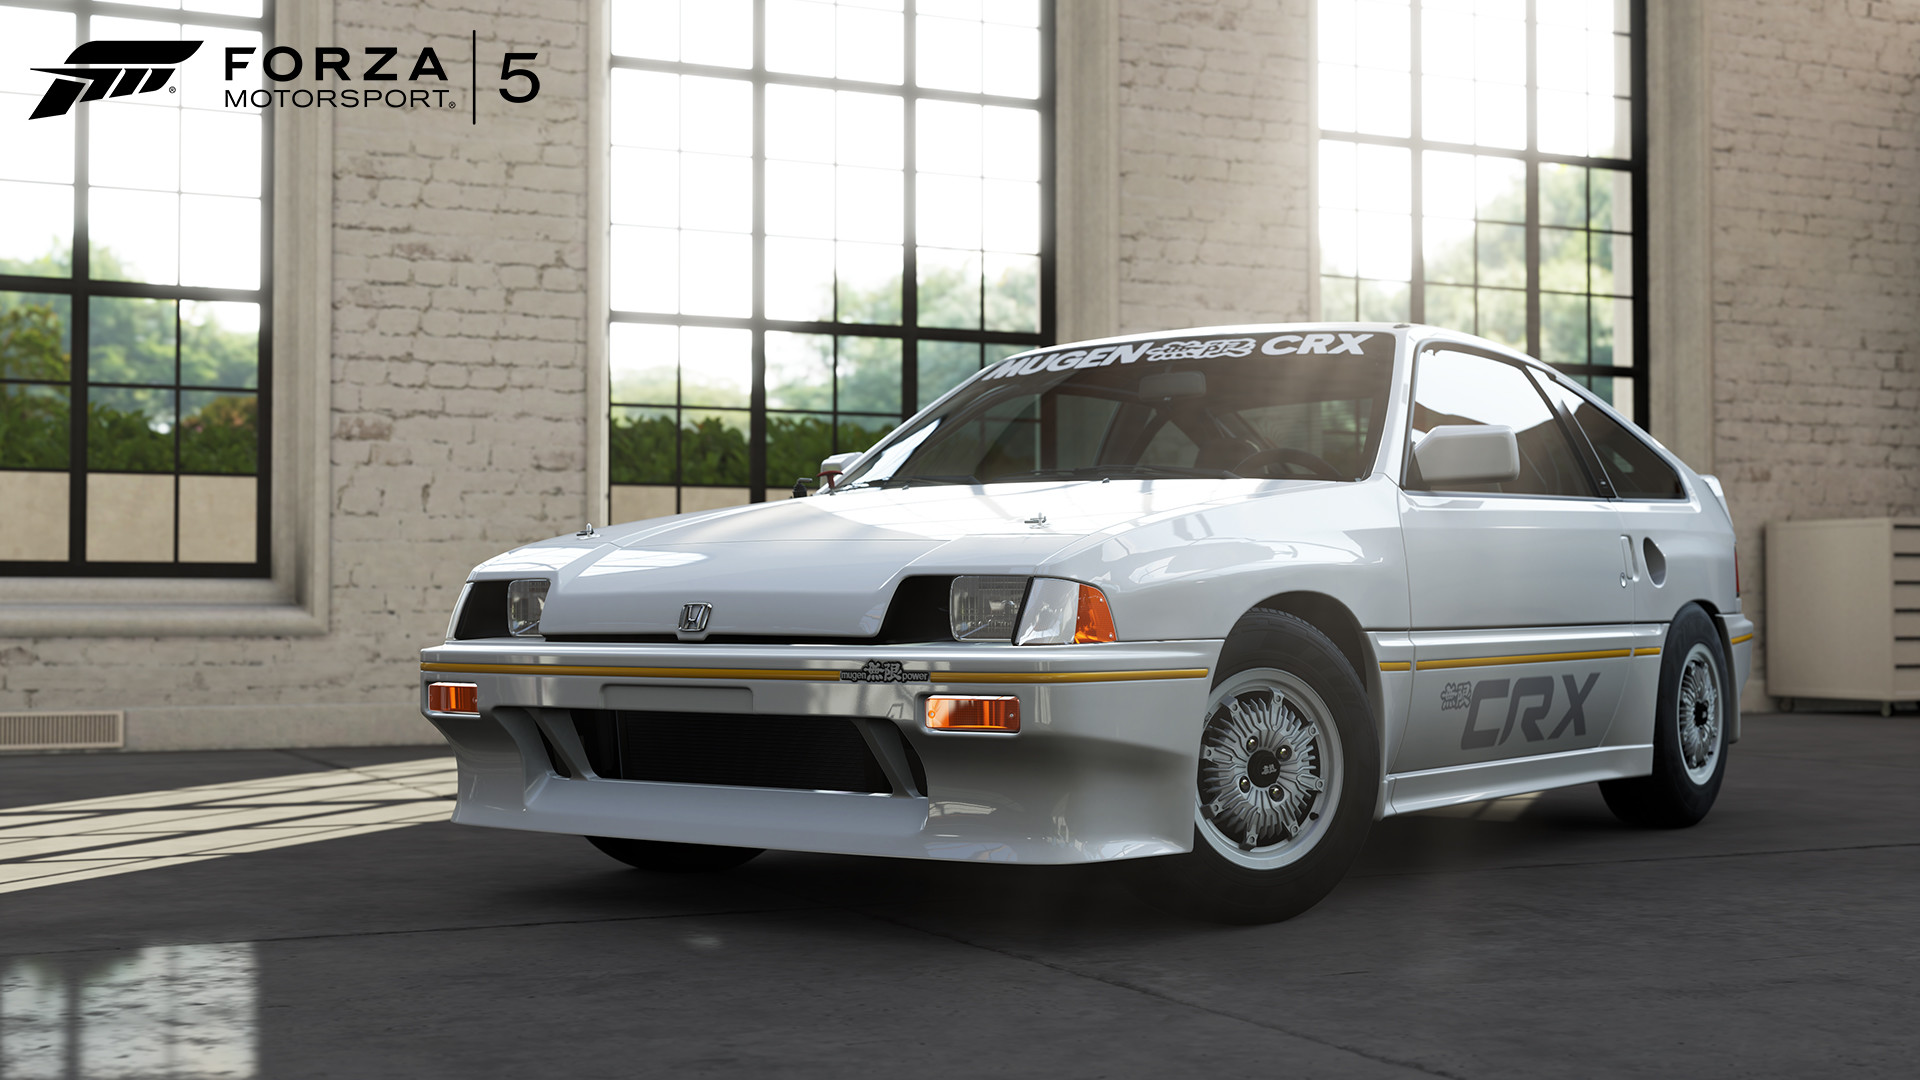 1920x1080 Forza Motorsport 5 and Honda Release the Honda Legends Car Pack - Xbox Wire